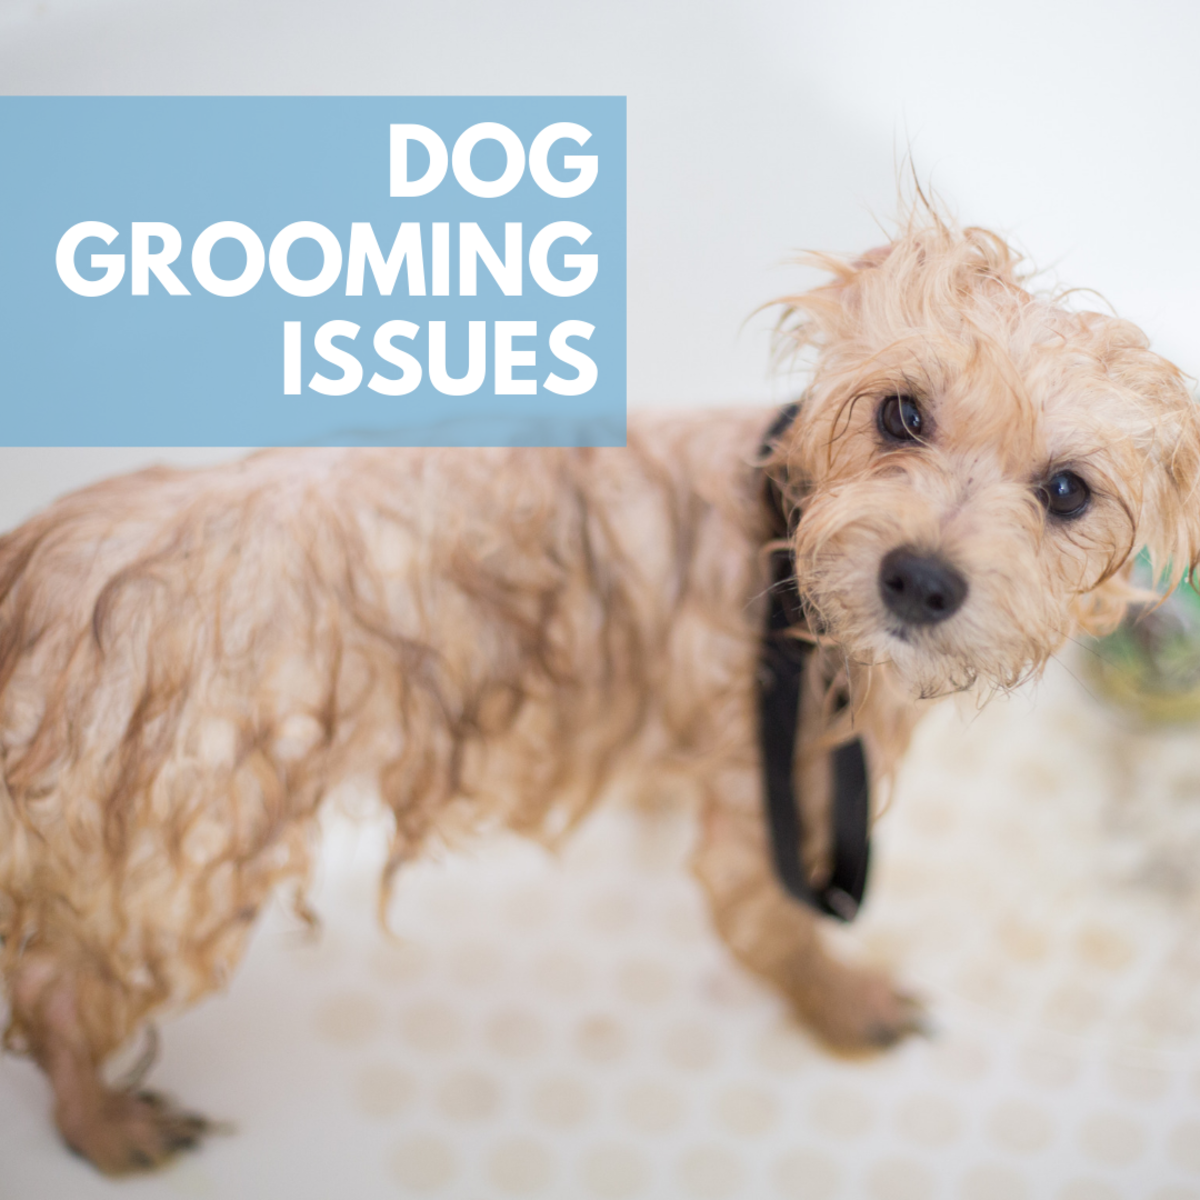 Common Dog Grooming Issues